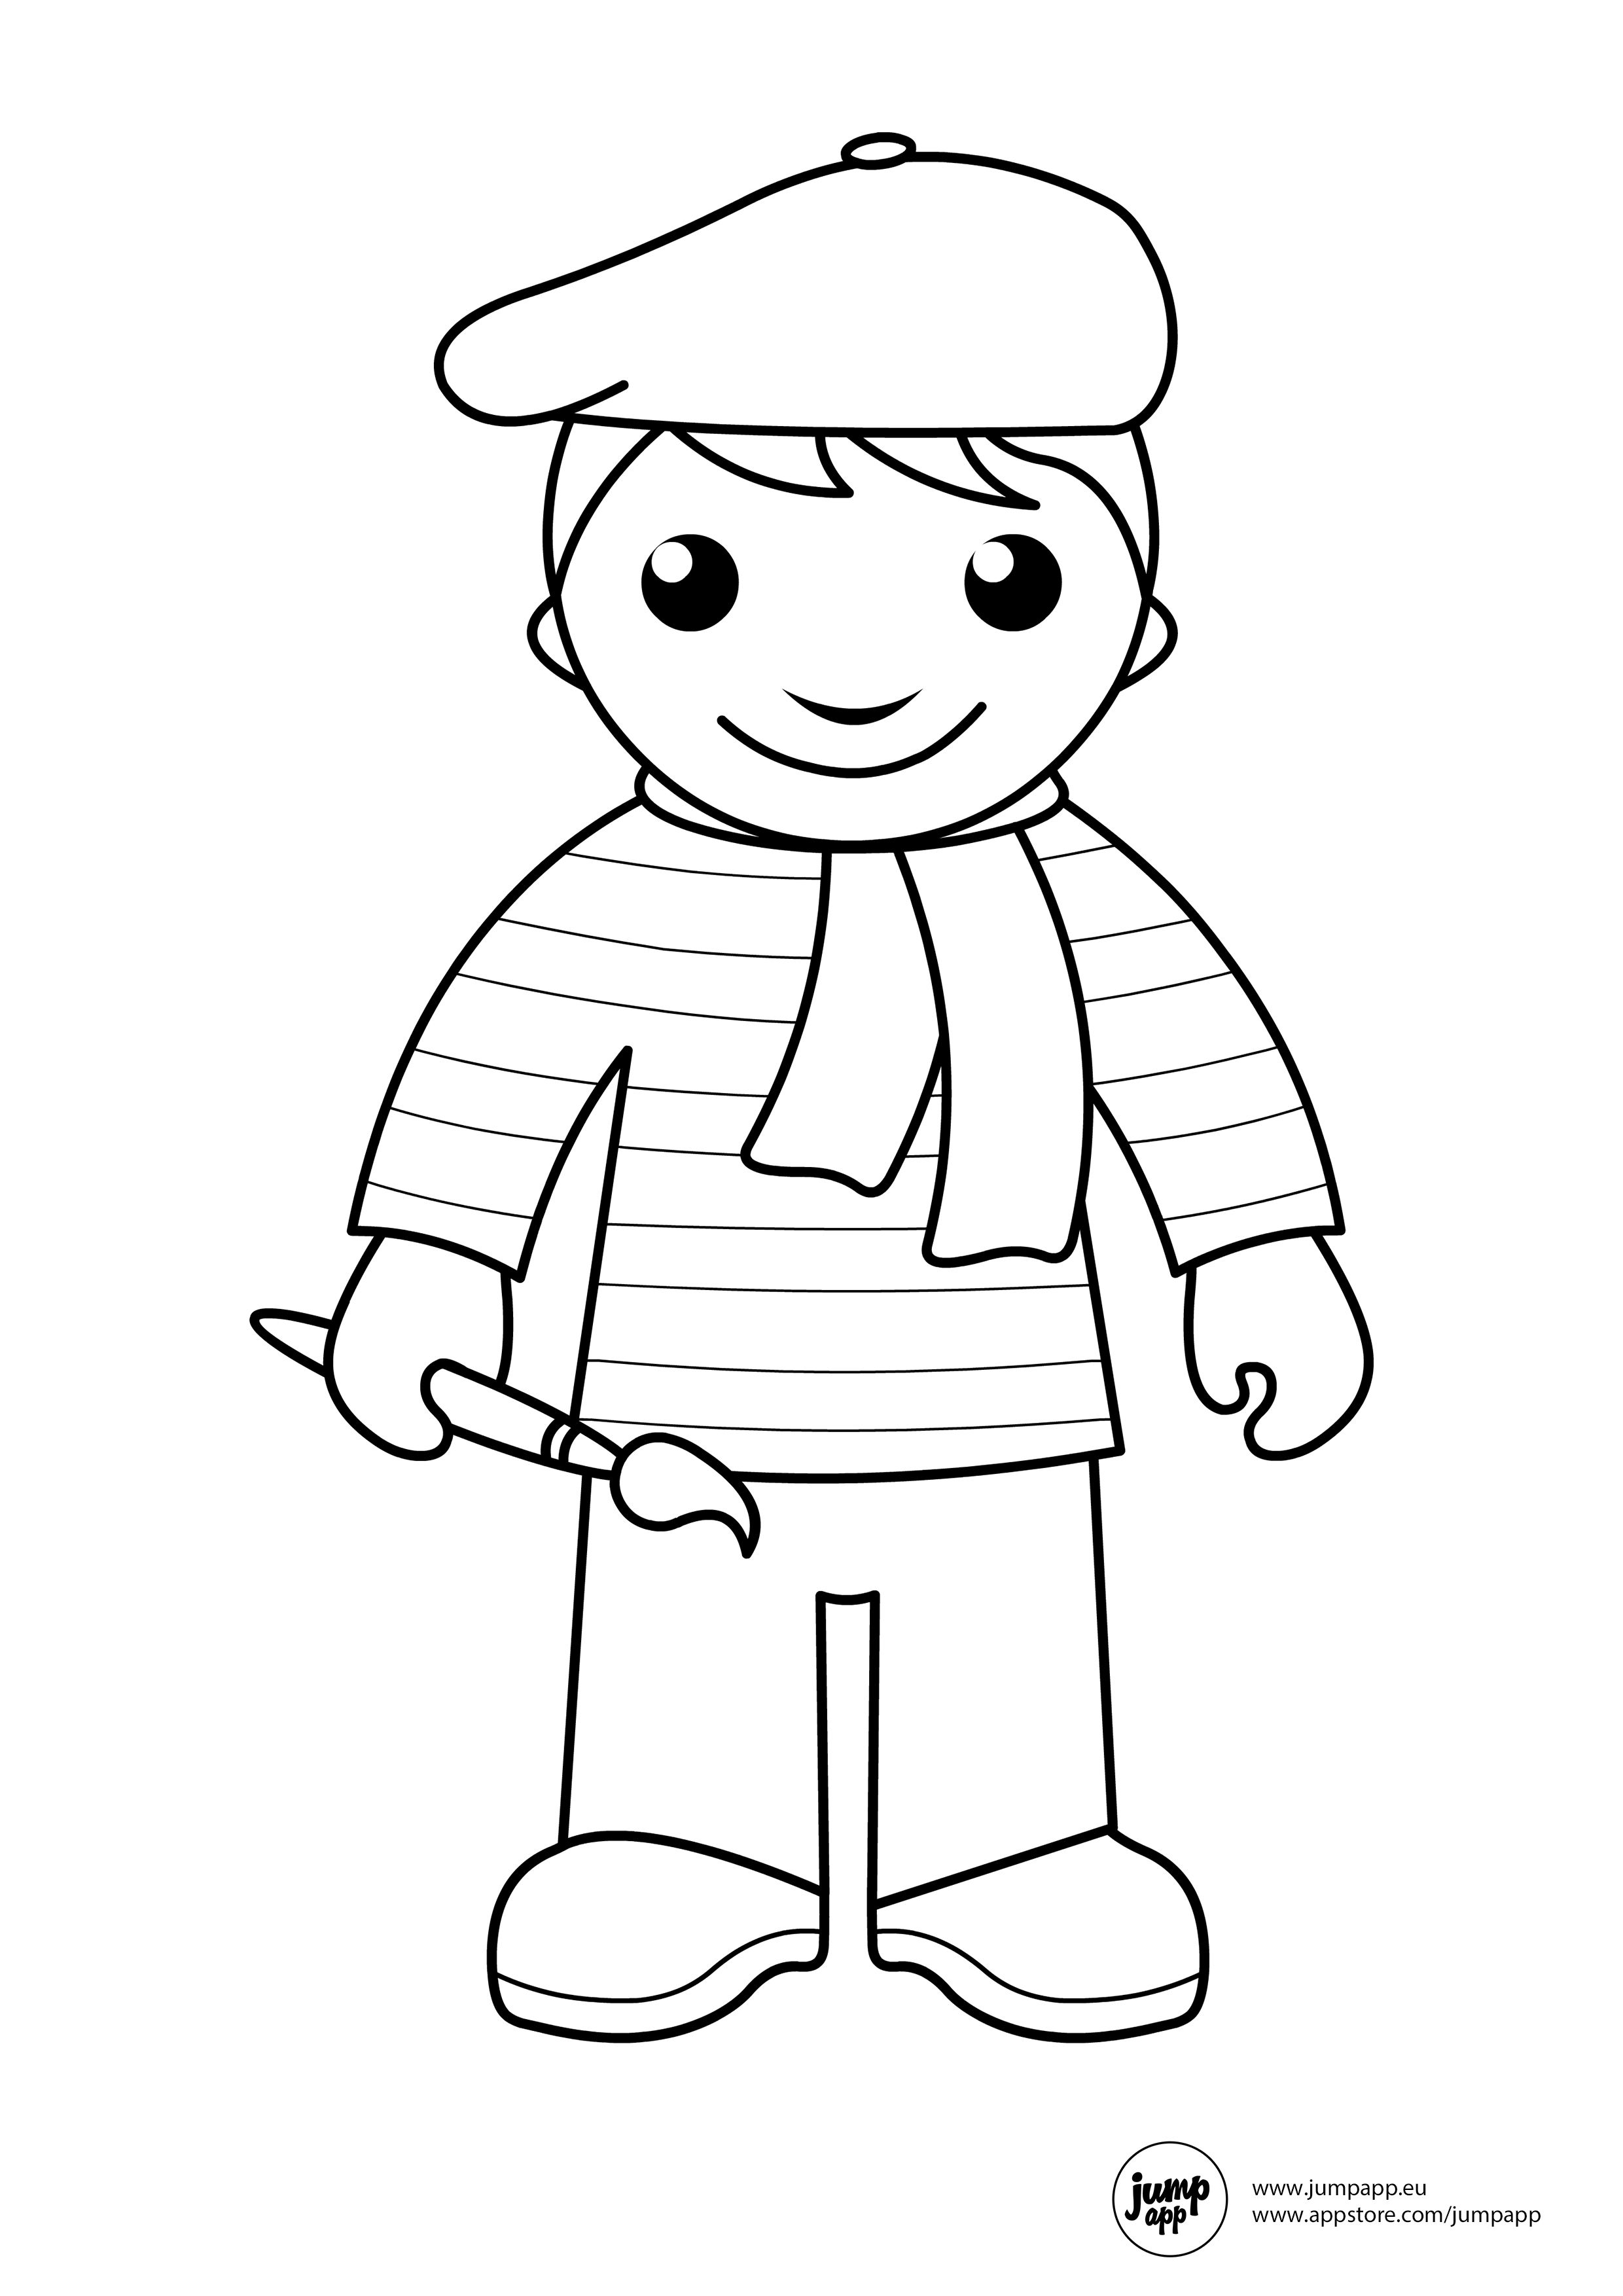 Coloring Page Goldsmith Pages Sketch Coloring Page